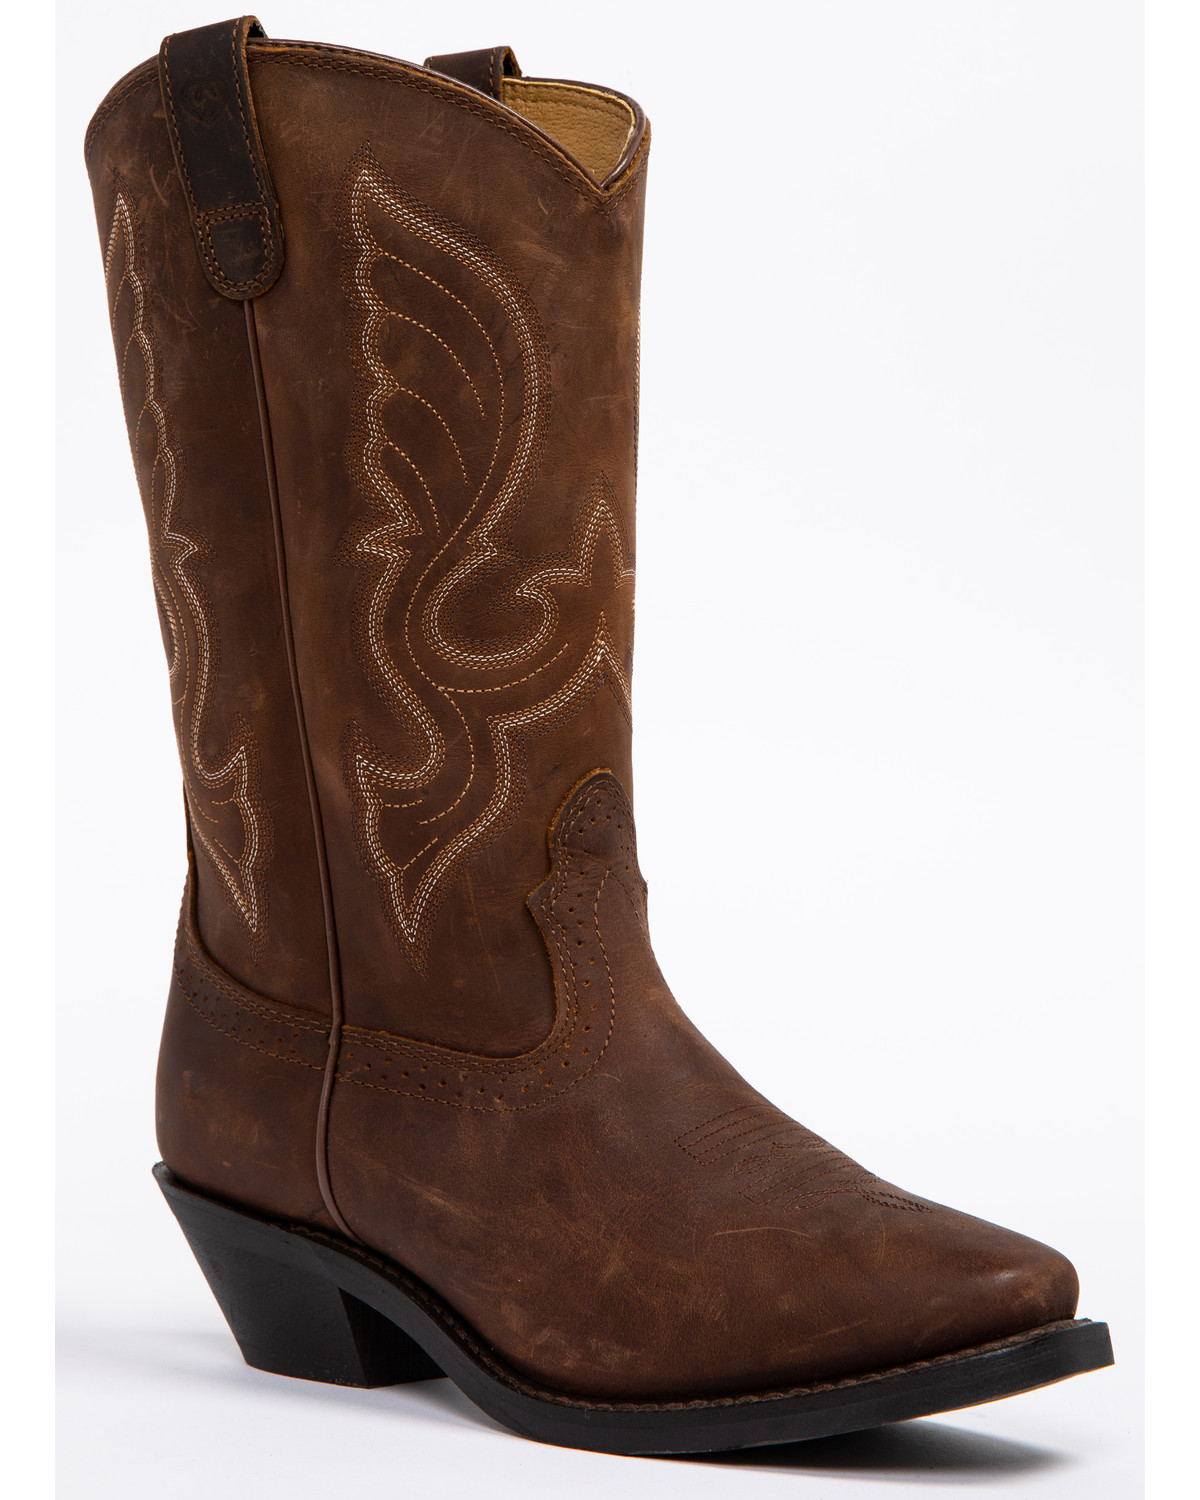 Unique Womens Brown Beige Leather Western Cowboy Wedding Boots Studs Rodeo Rhinestones | EBay